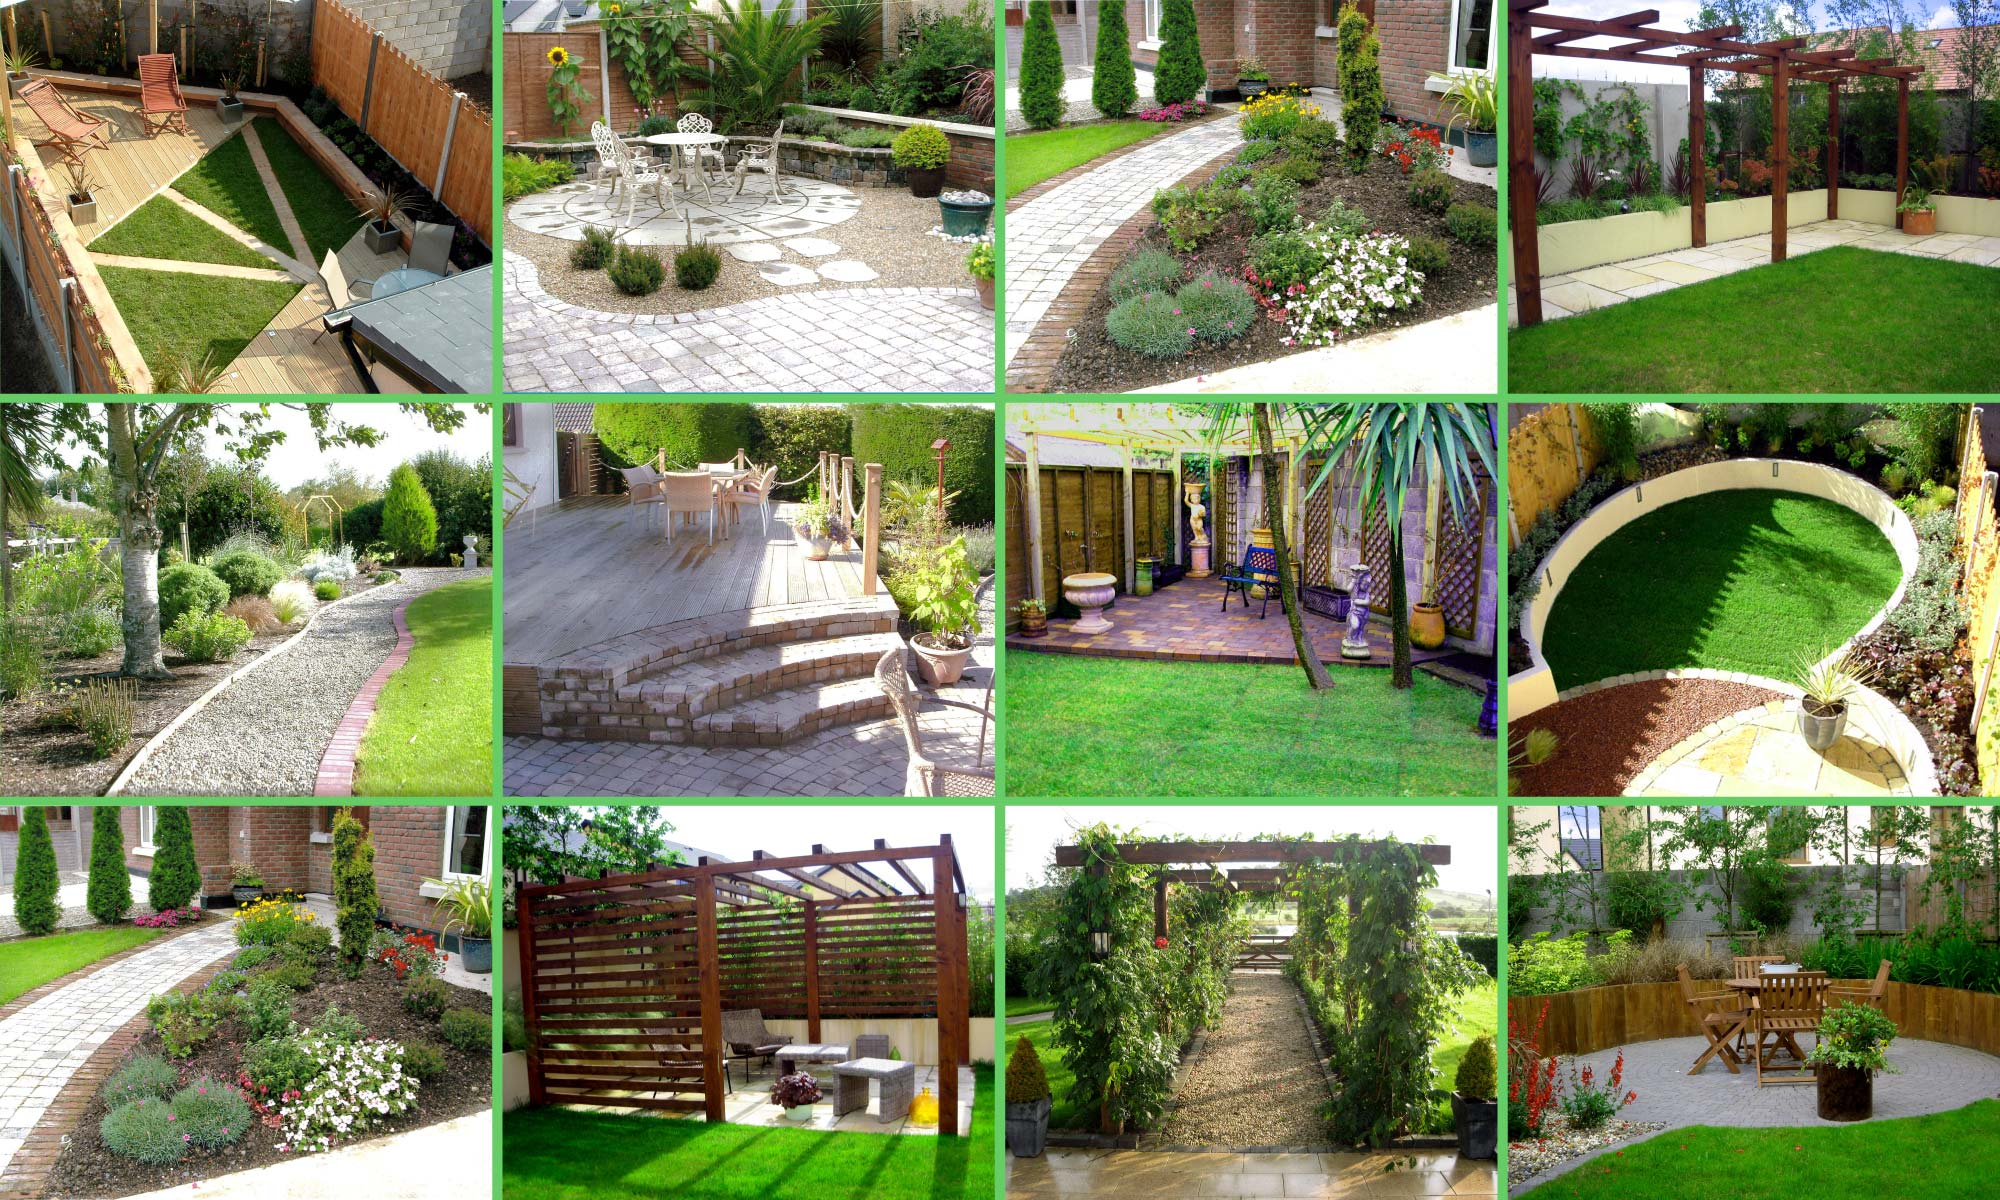 Landscaping services o 39 brien landscaping for Home and garden maintenance services